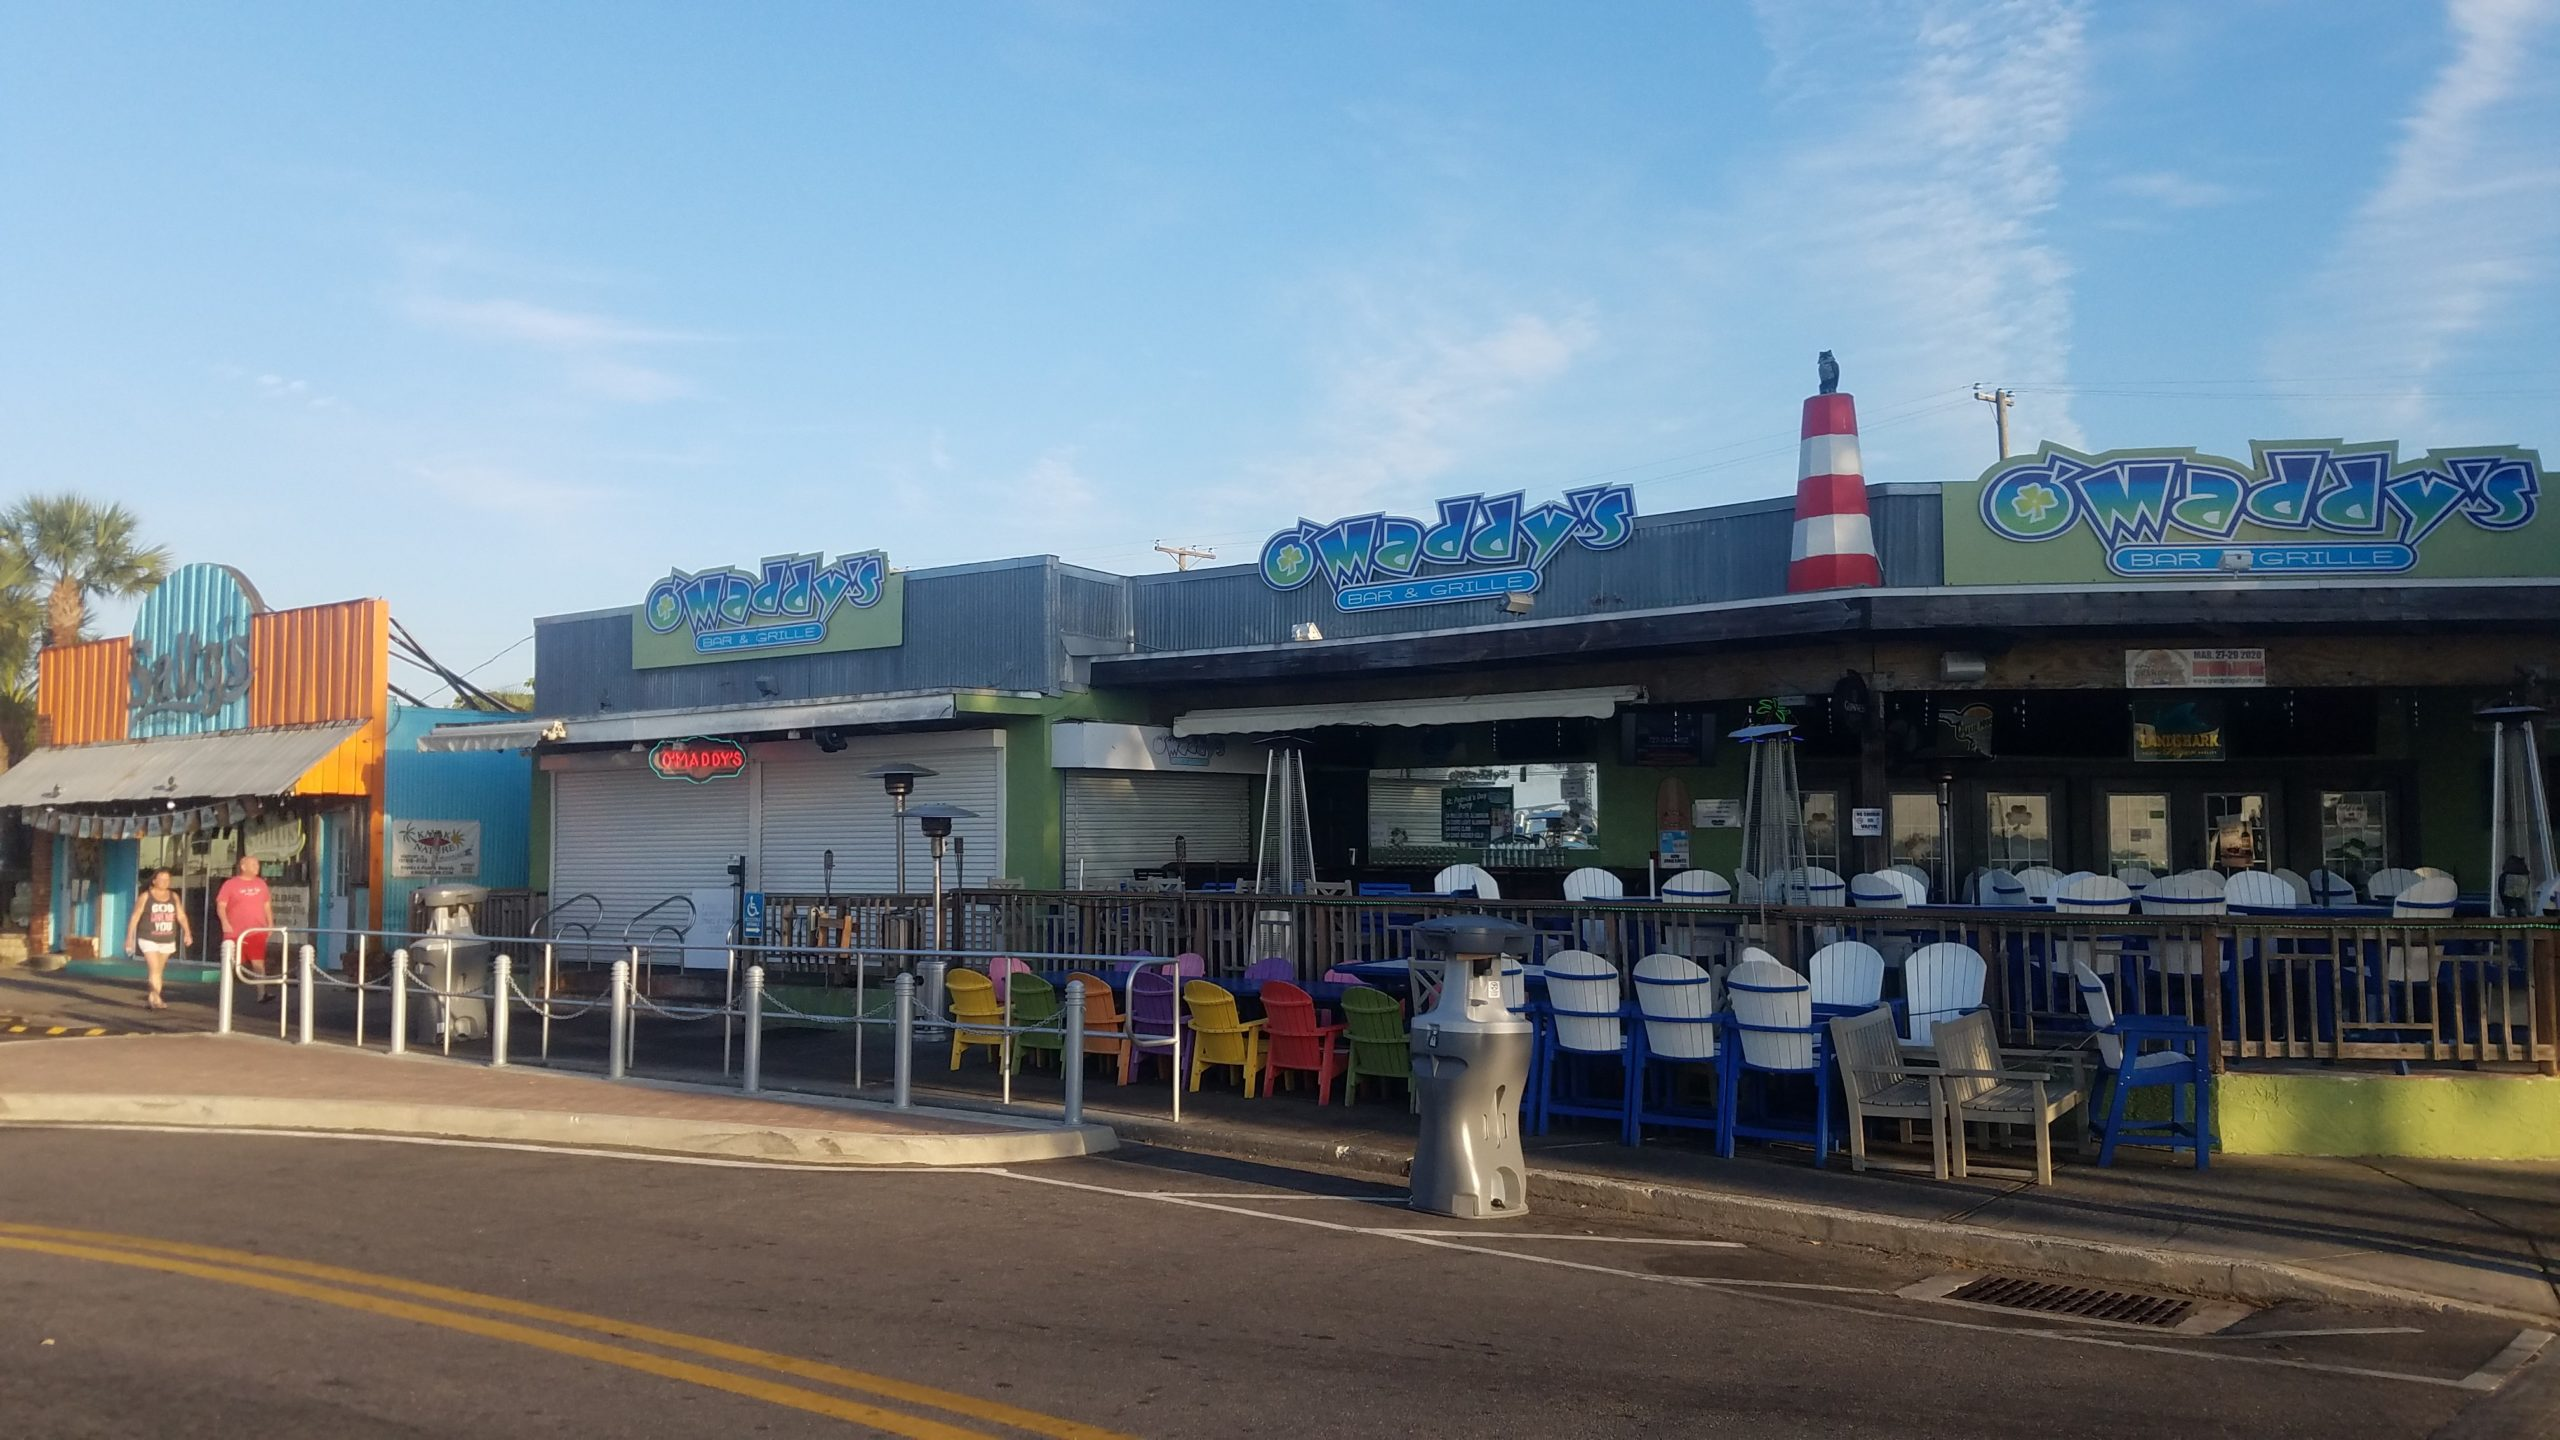 O'Maddy's and Salty's in Gulfport, Florida